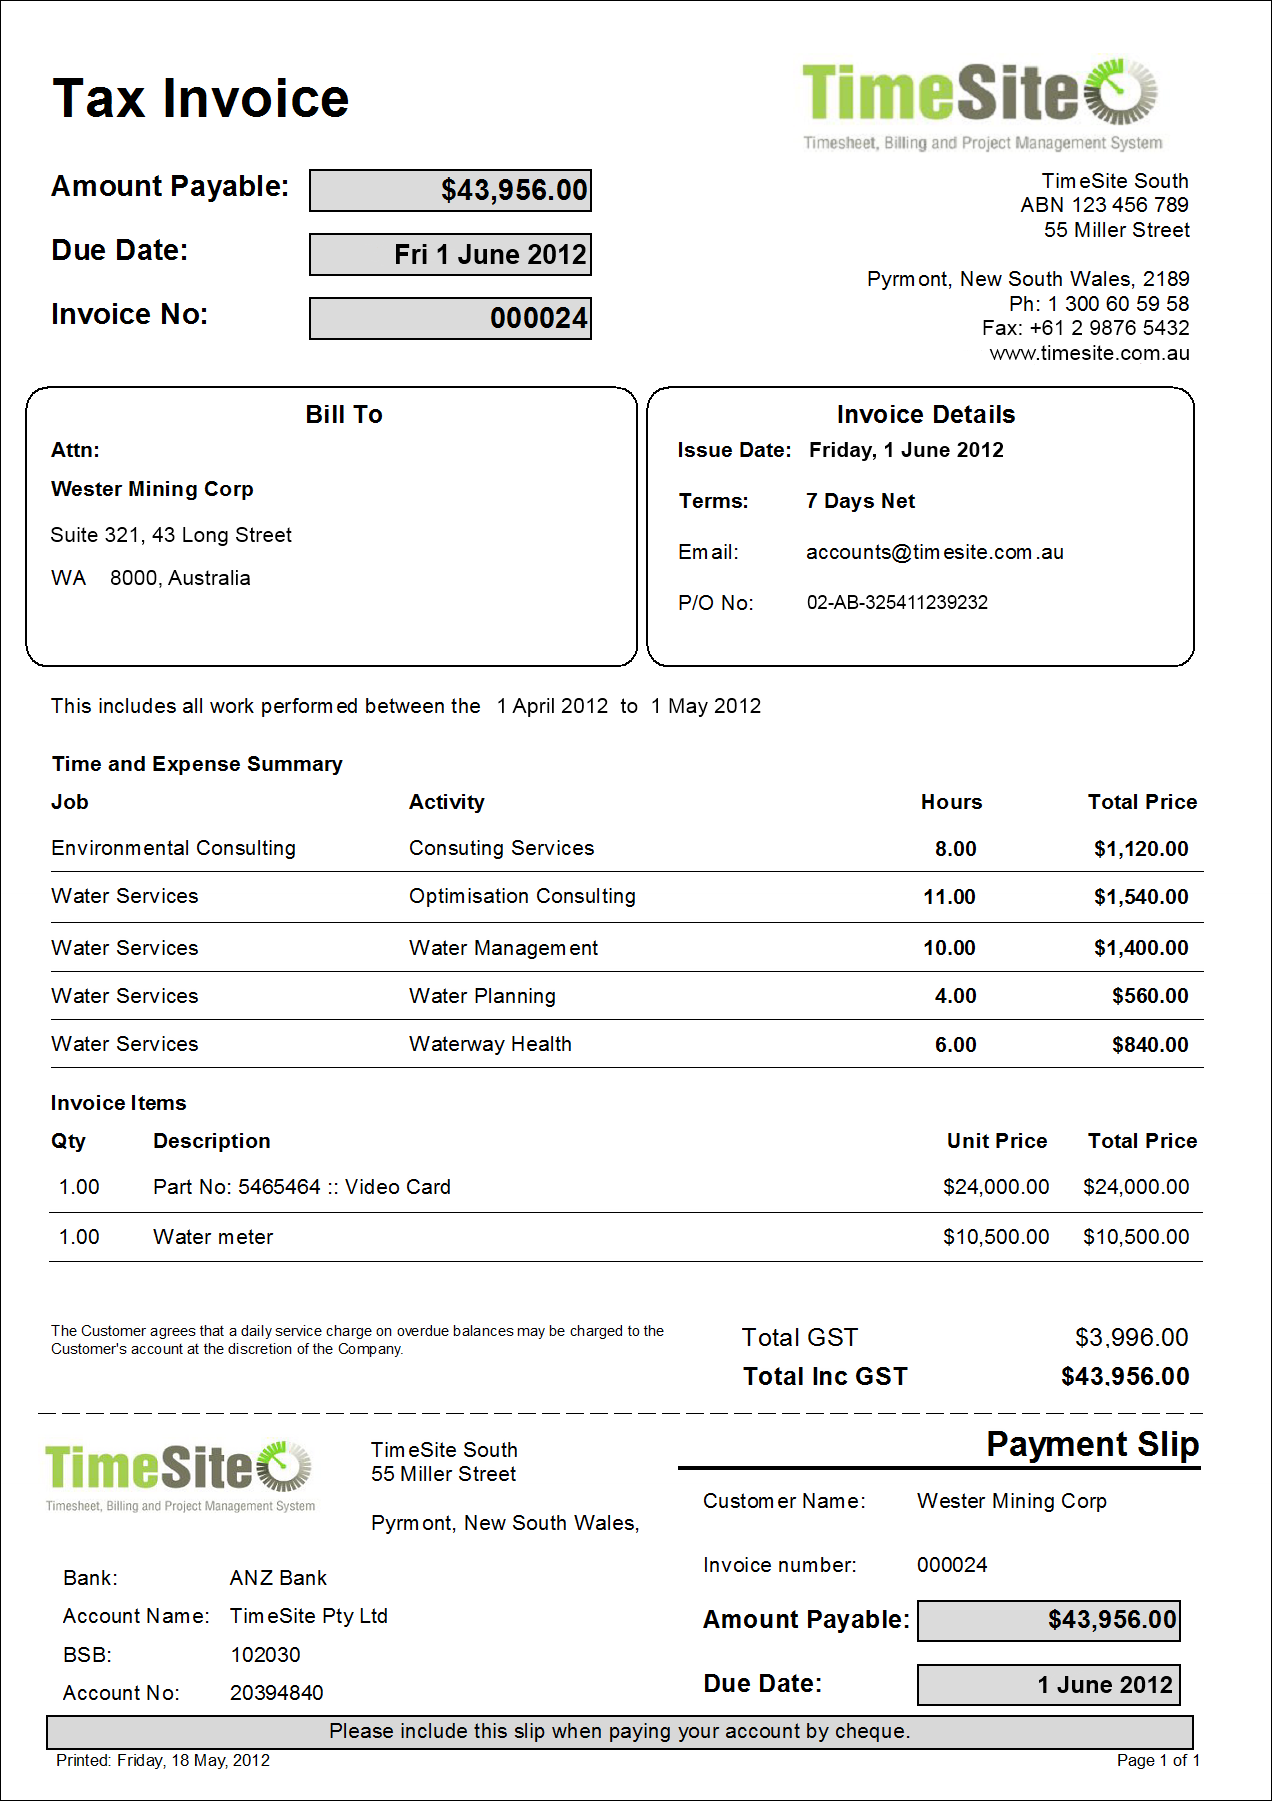 australian tax invoice template excel – notators, Invoice templates